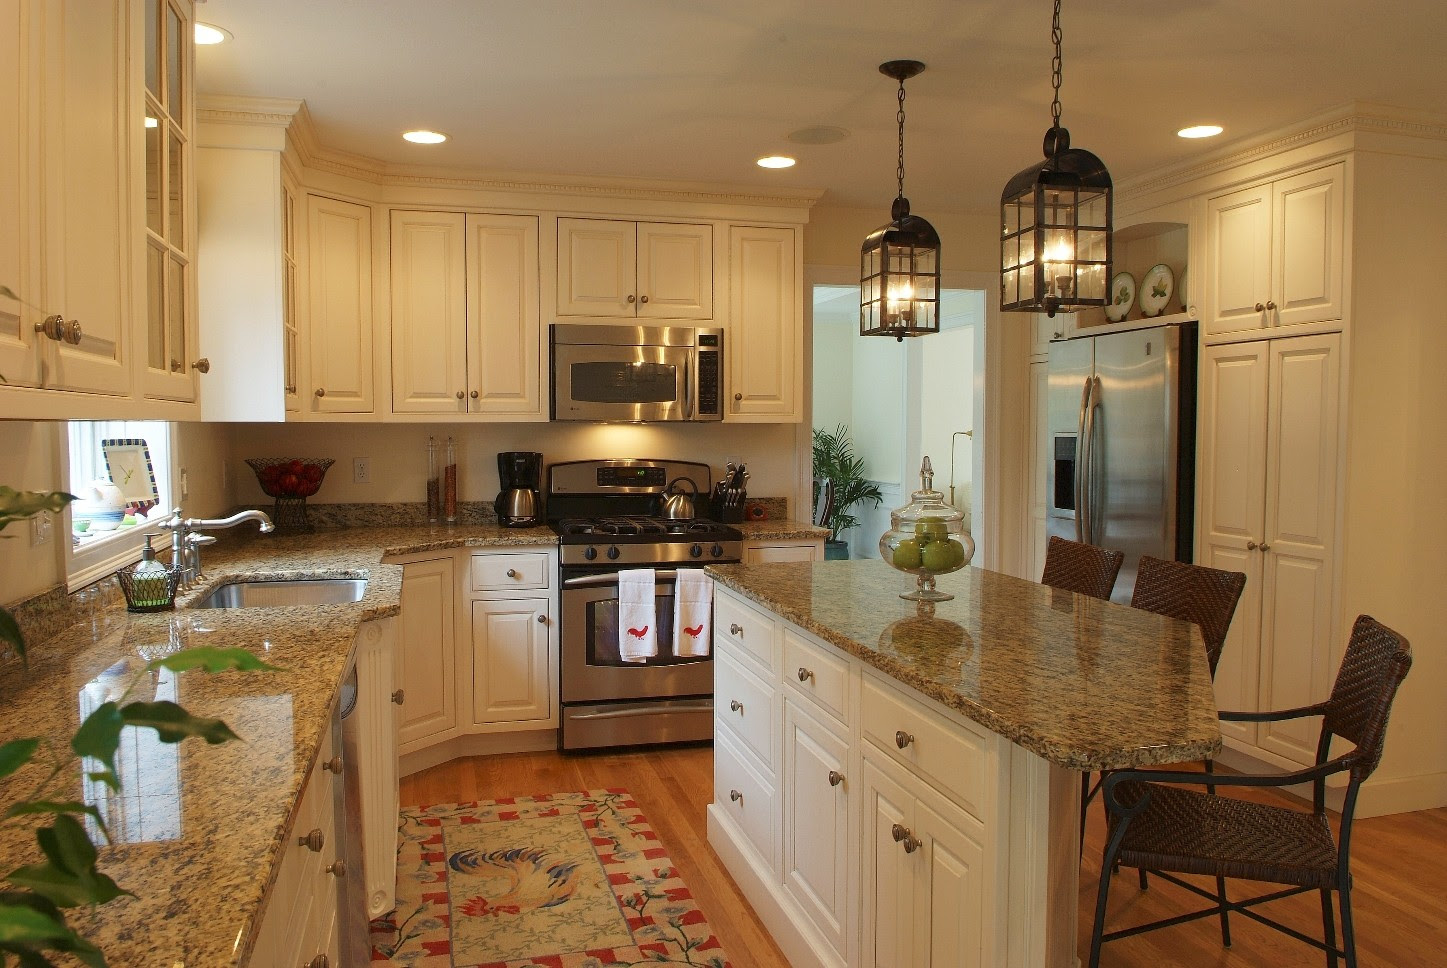 10 Kitchen Cabinets Refacing Ideas   A Creative Mom